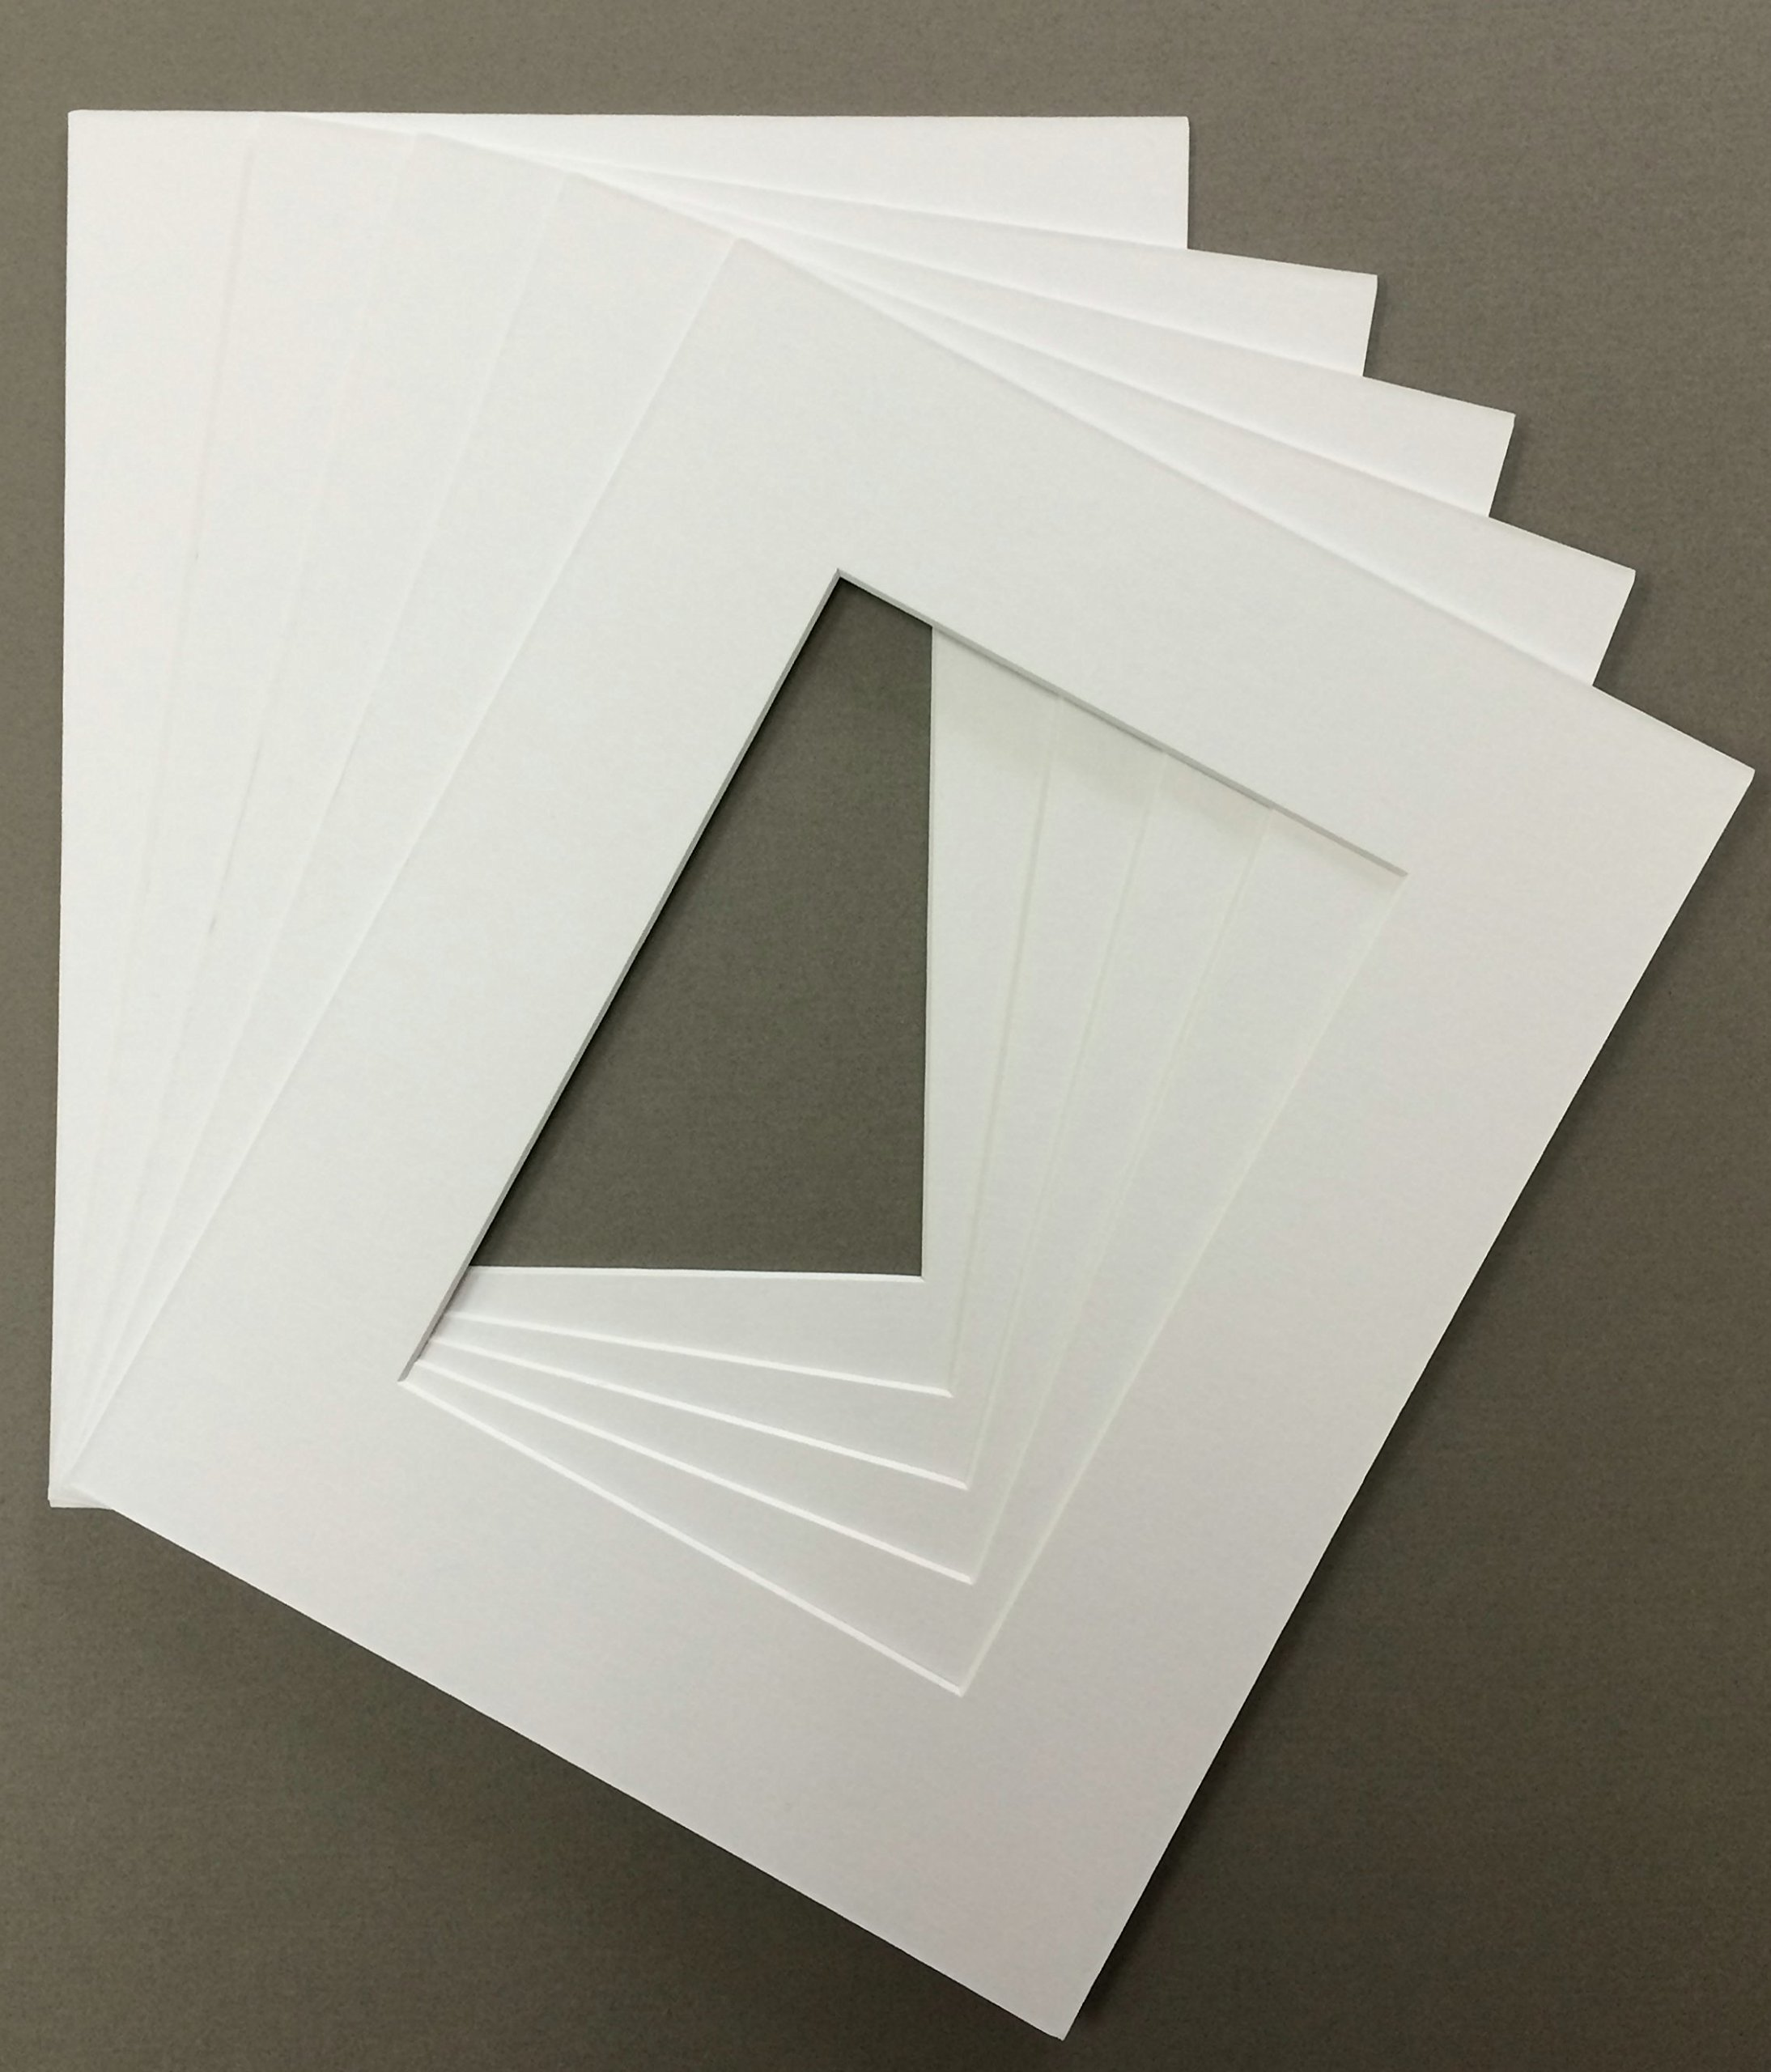 Pack of 5 22x28 White Picture Mats with White Core Bevel Cut for 18x24 Pictures